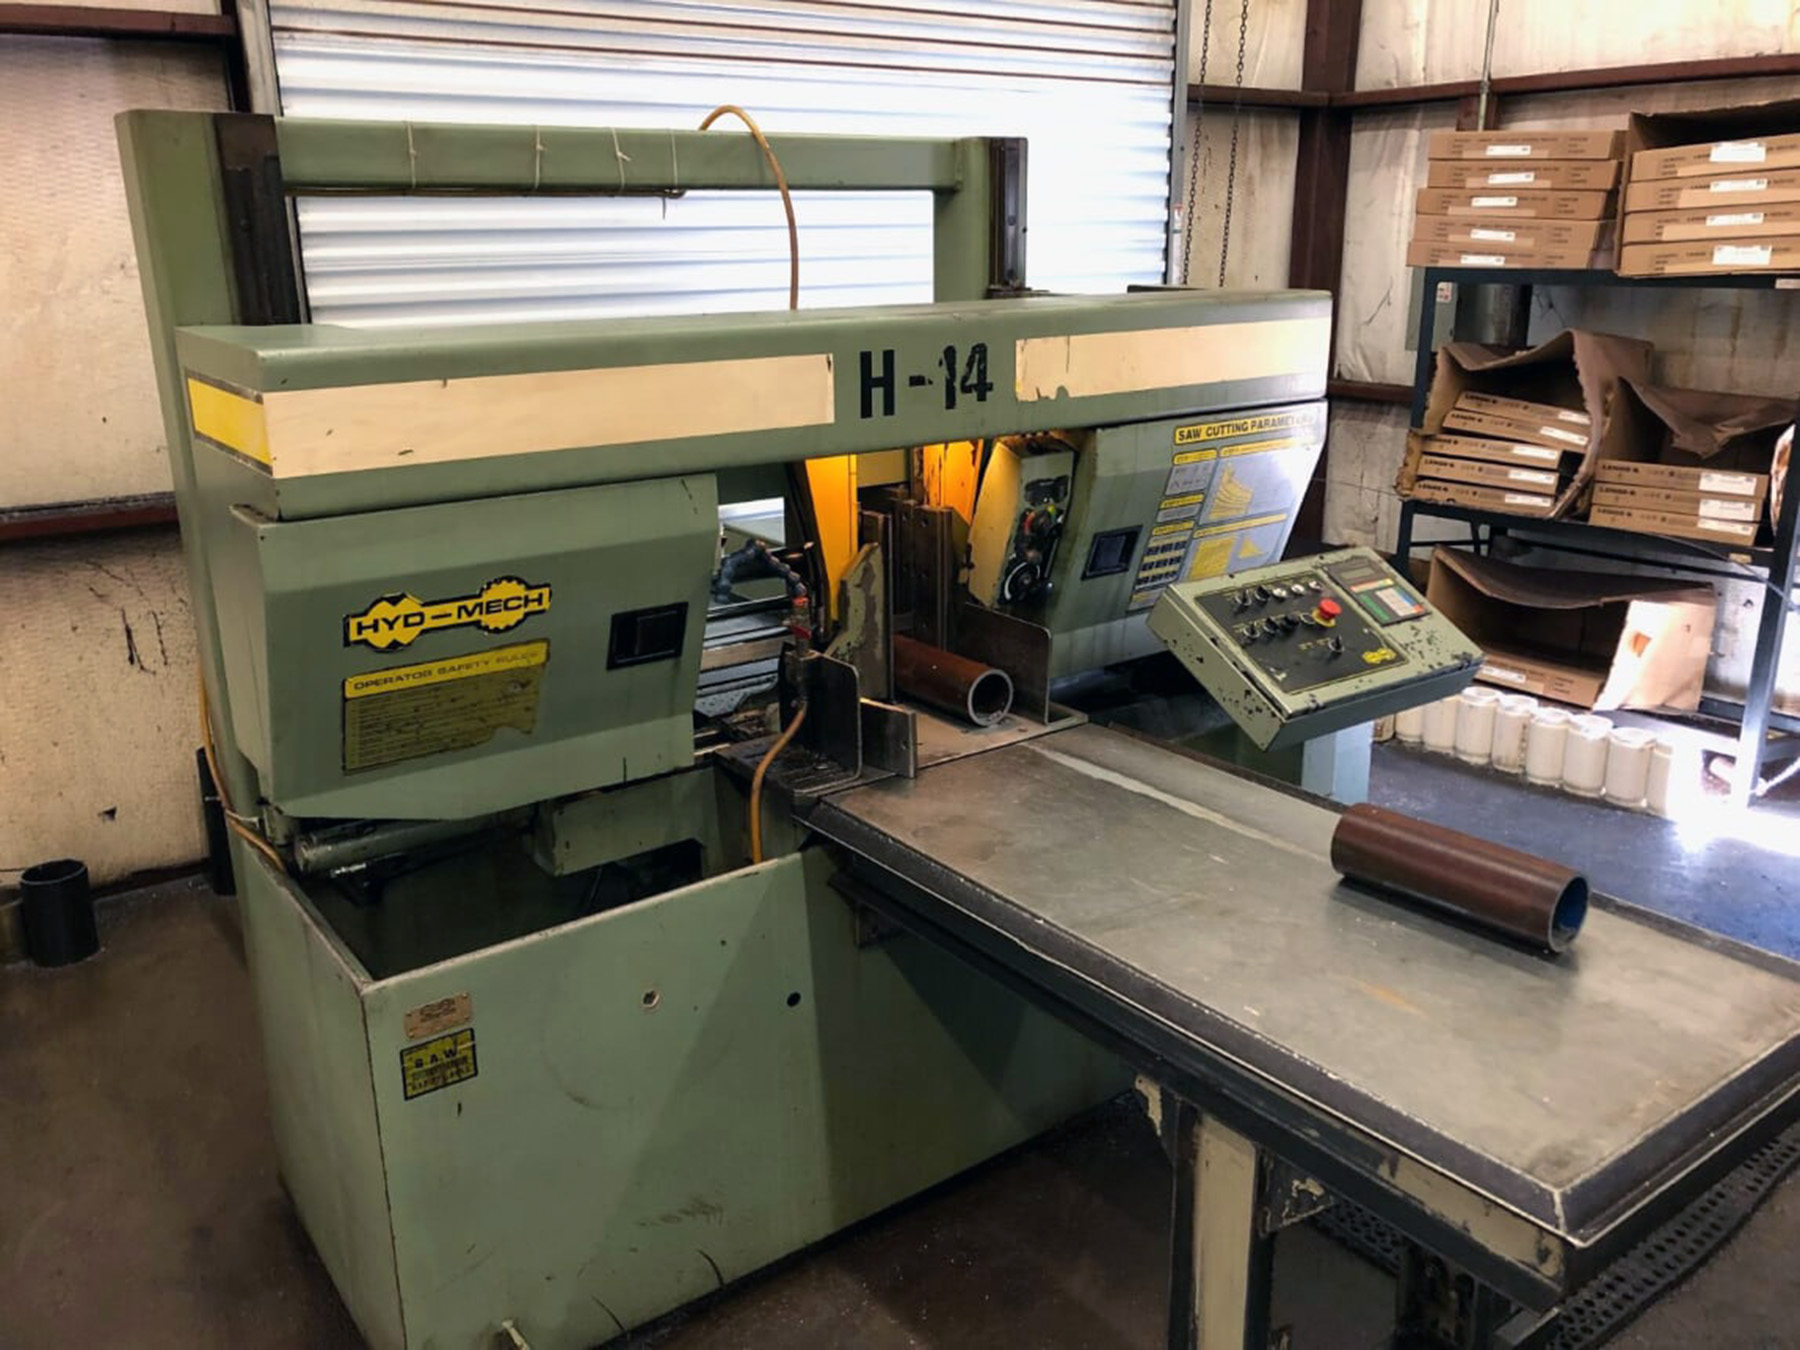 USED, HYD-MECH MODEL H-14A AUTOMATIC HORIZONTAL BANDSAW